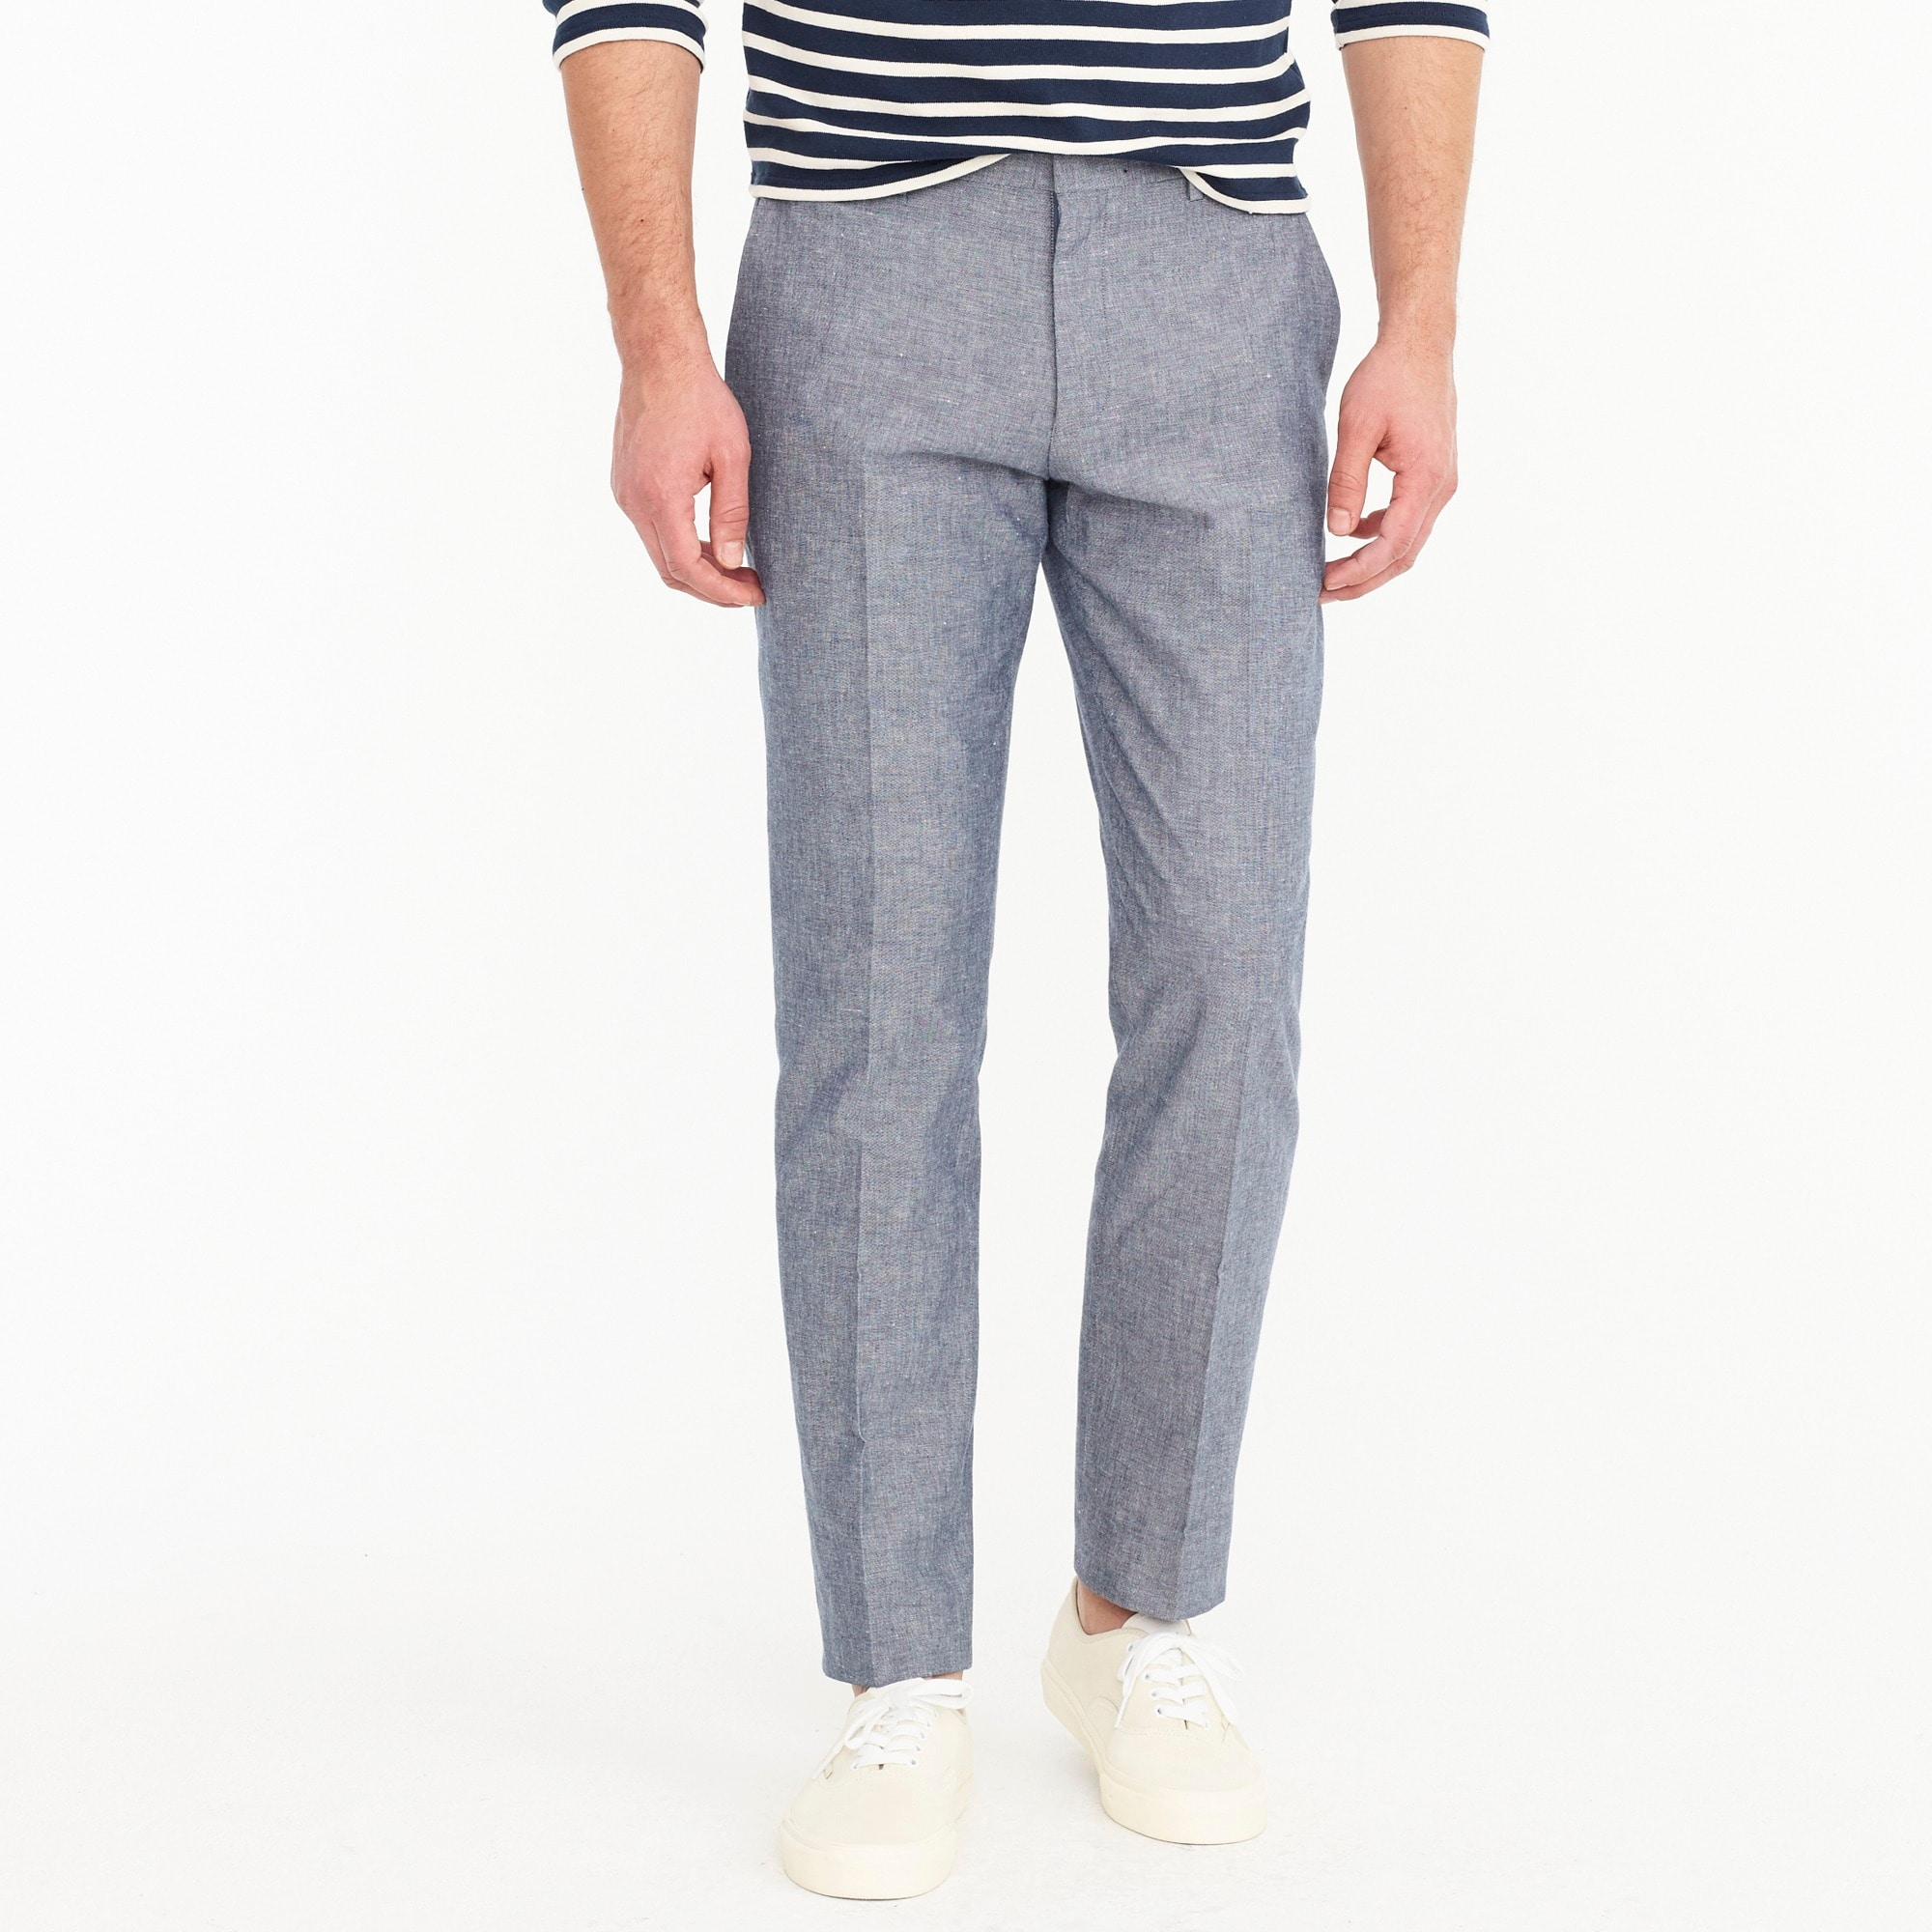 Image 1 for Ludlow Slim-fit unstructured suit pant in cotton-linen